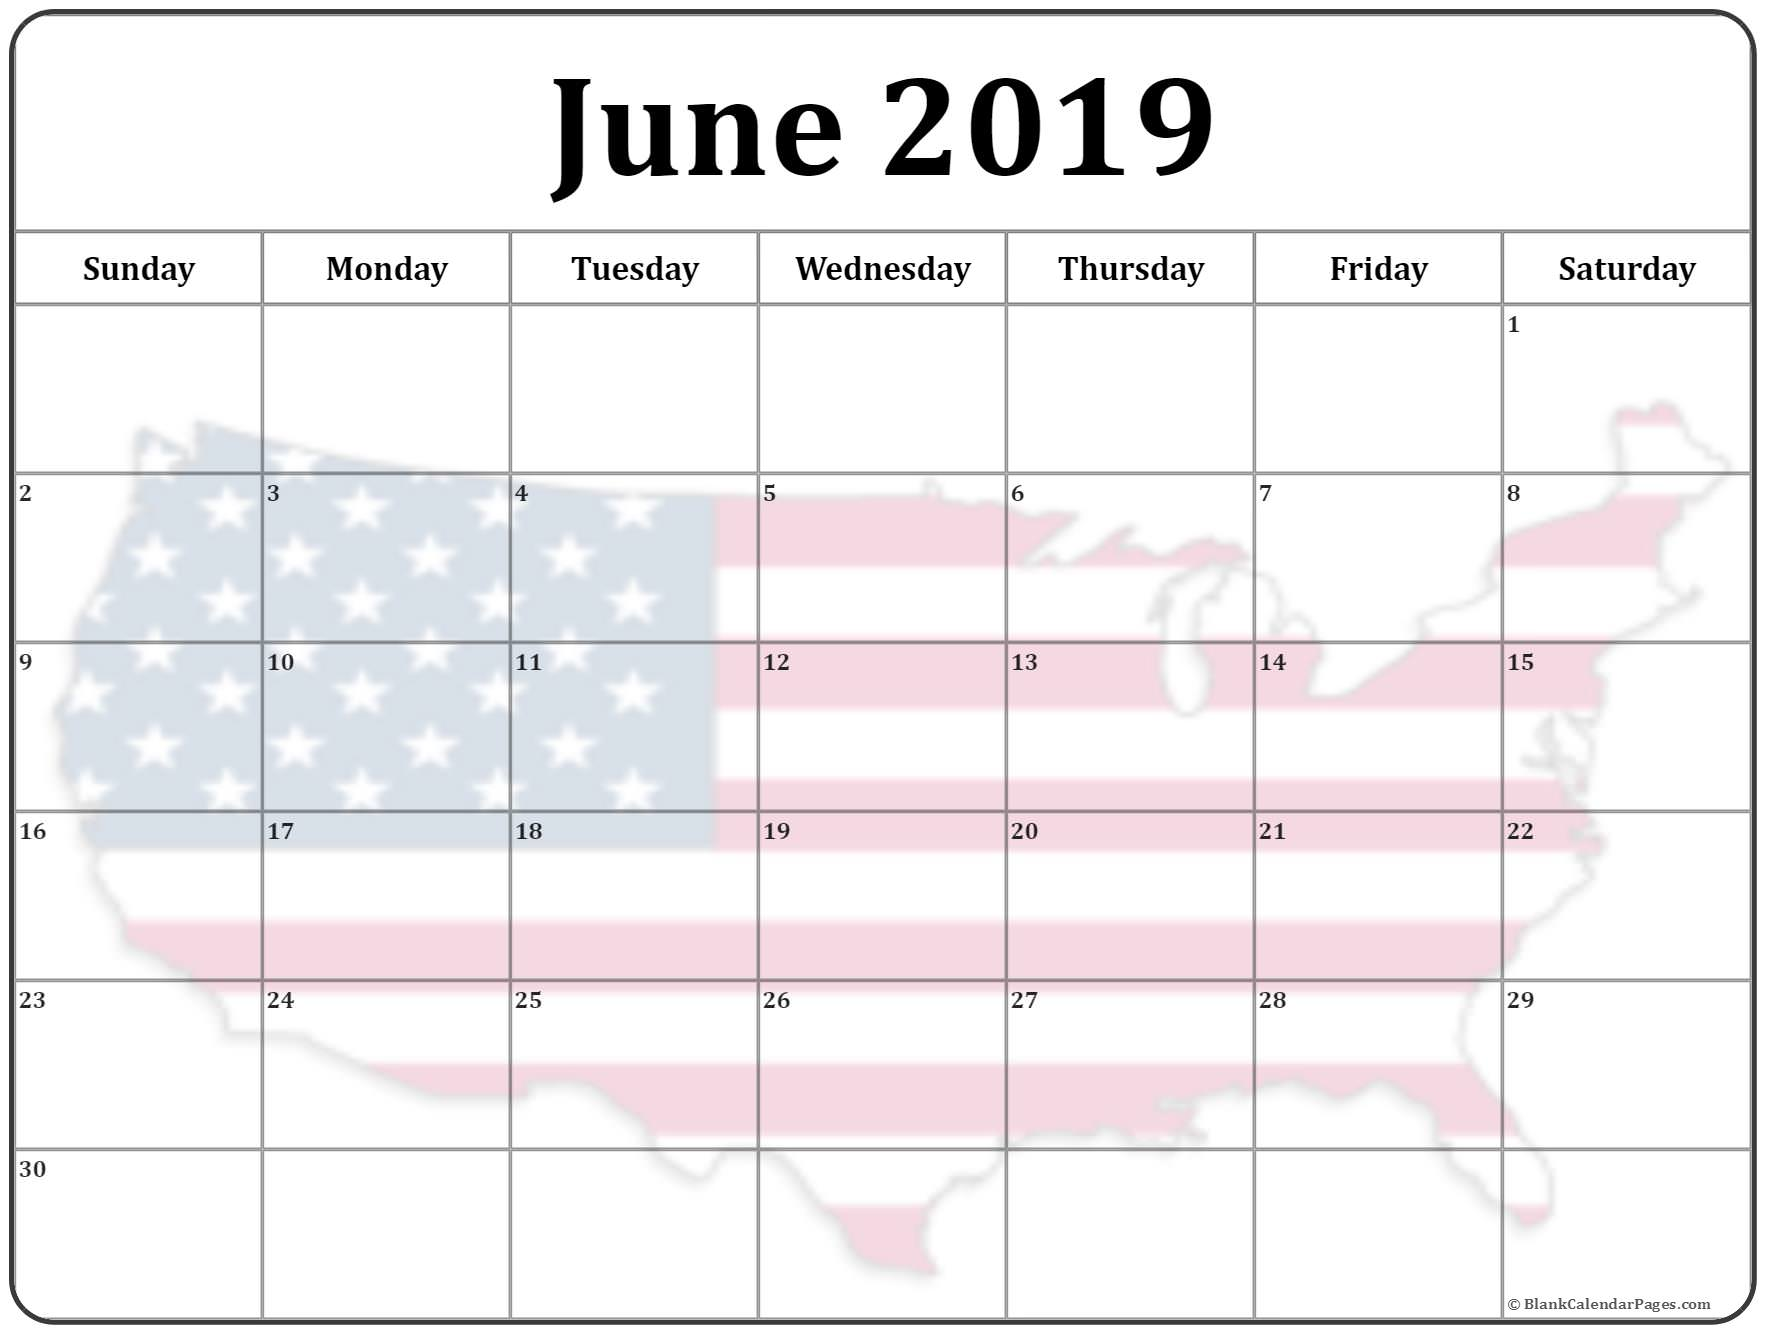 June 2019 Calendar Template USA